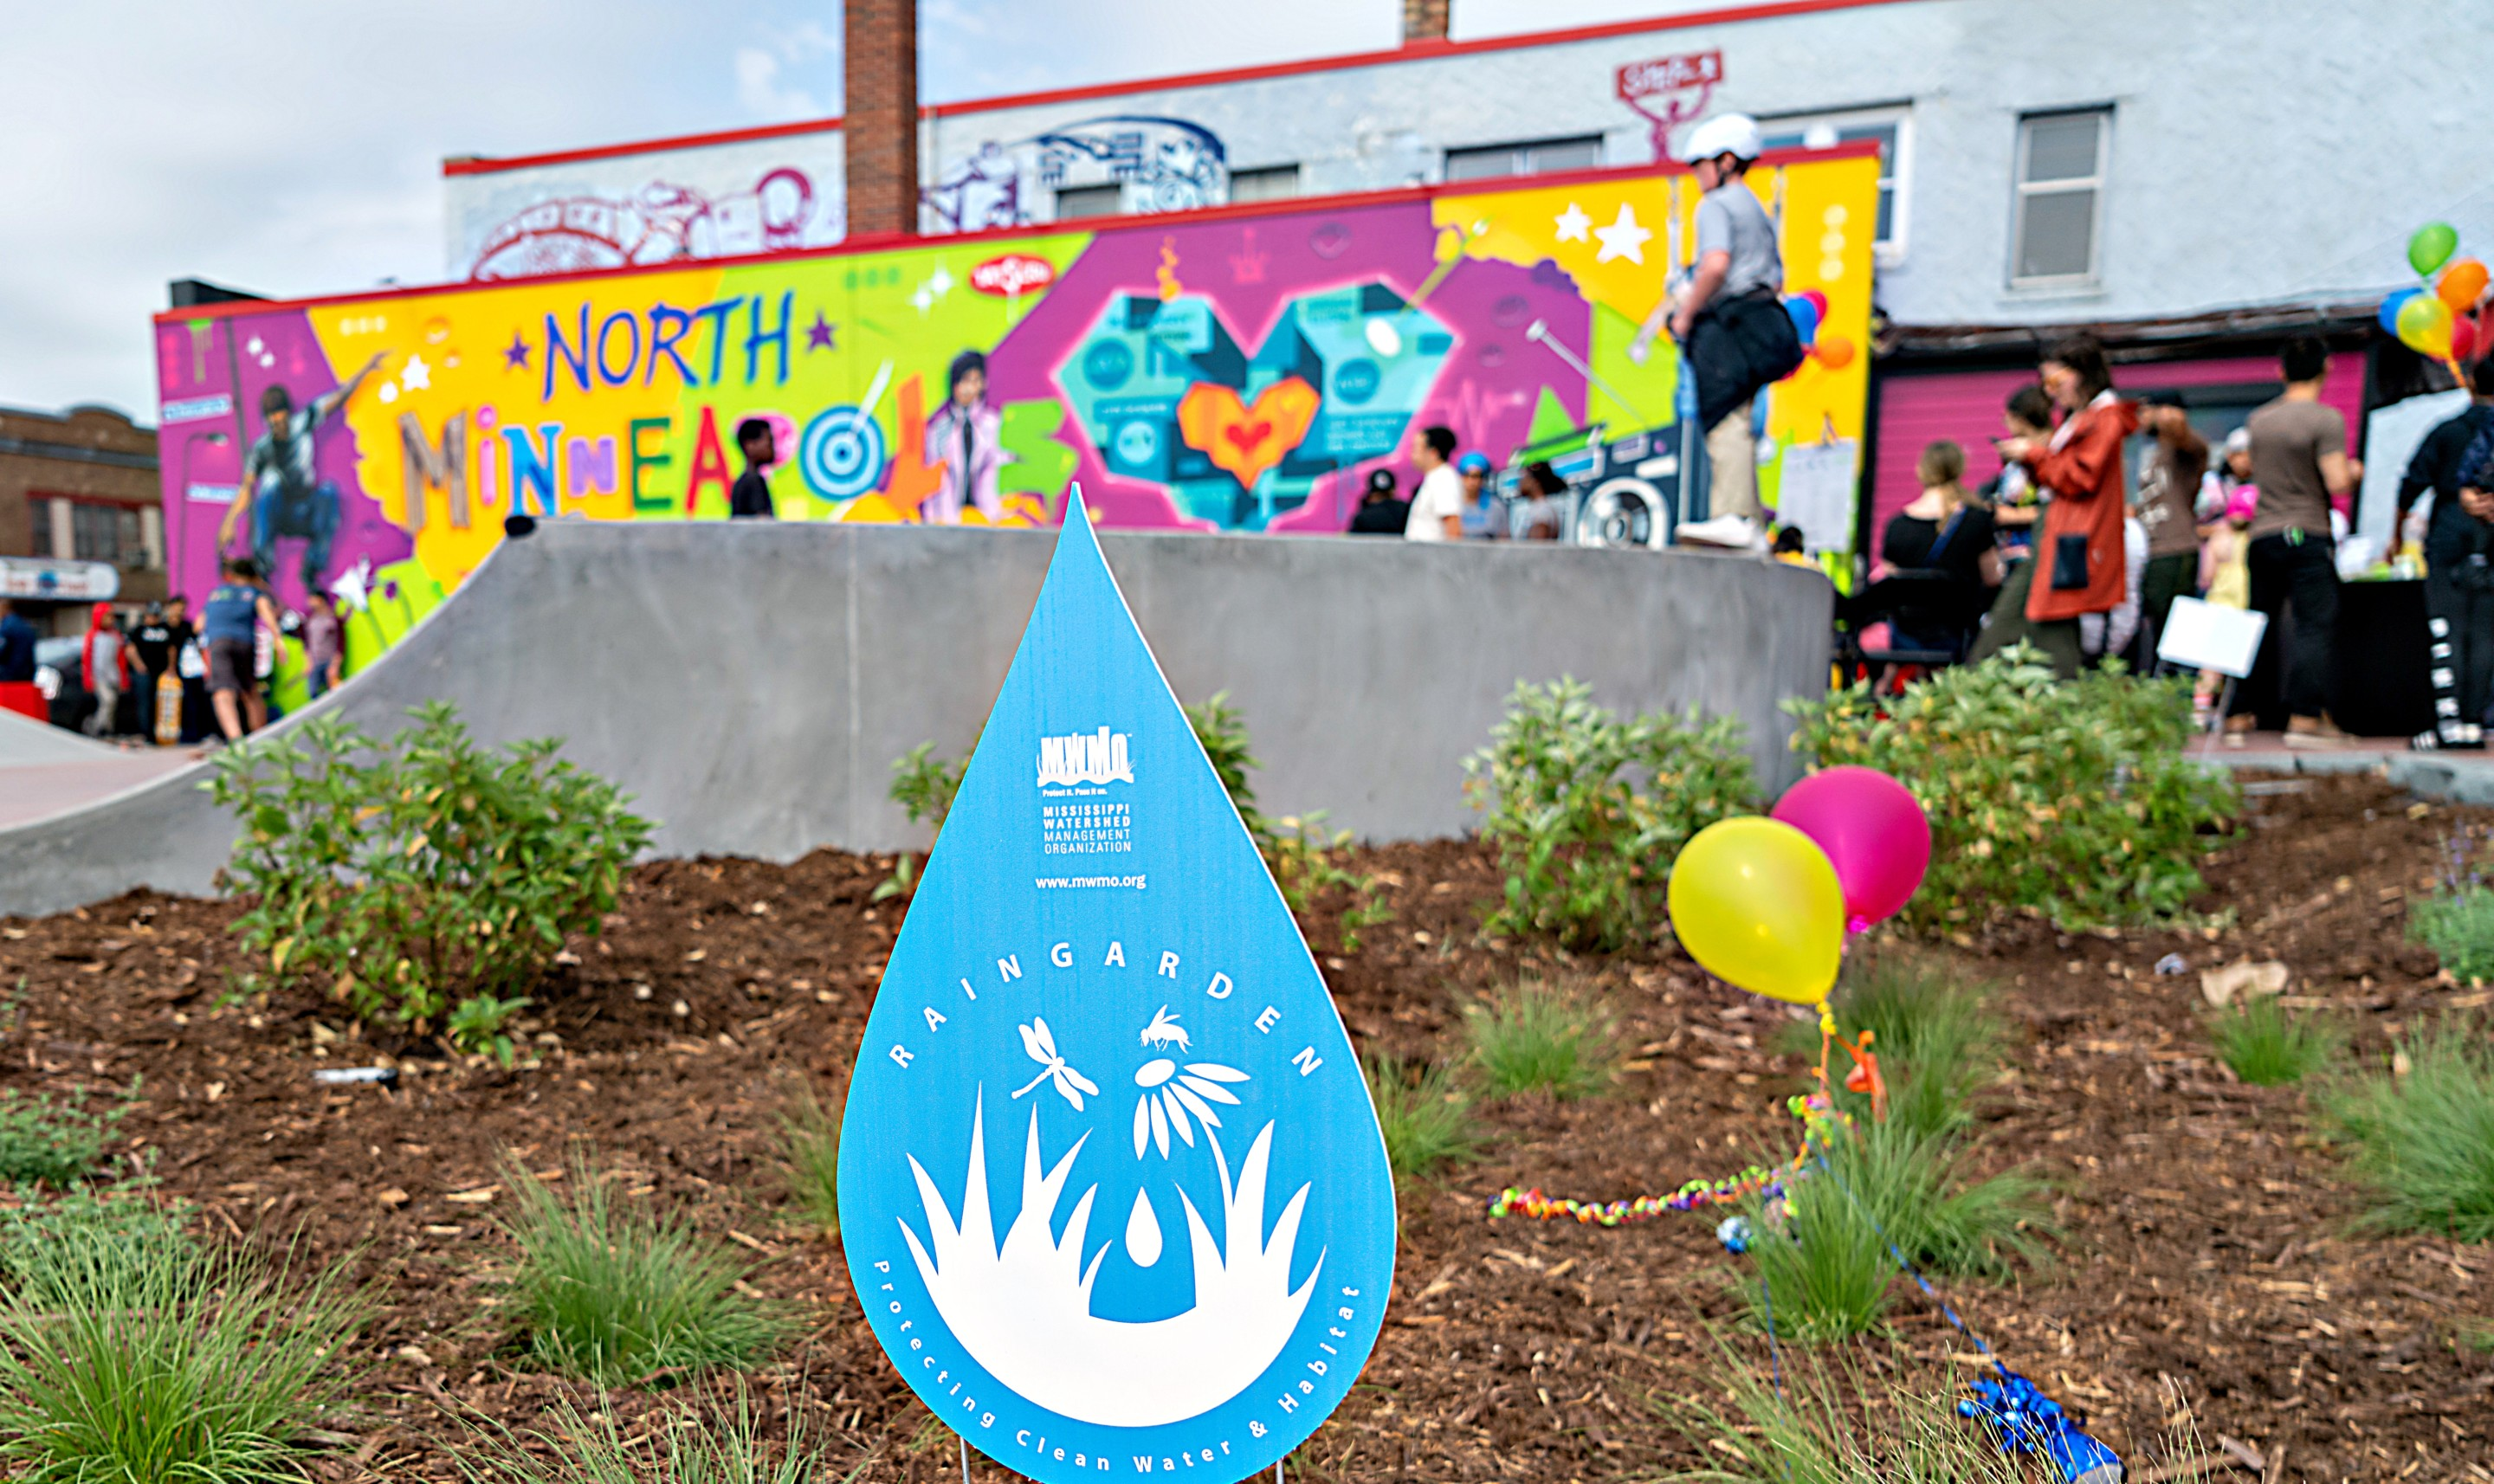 A giant mural in front of a rain garden